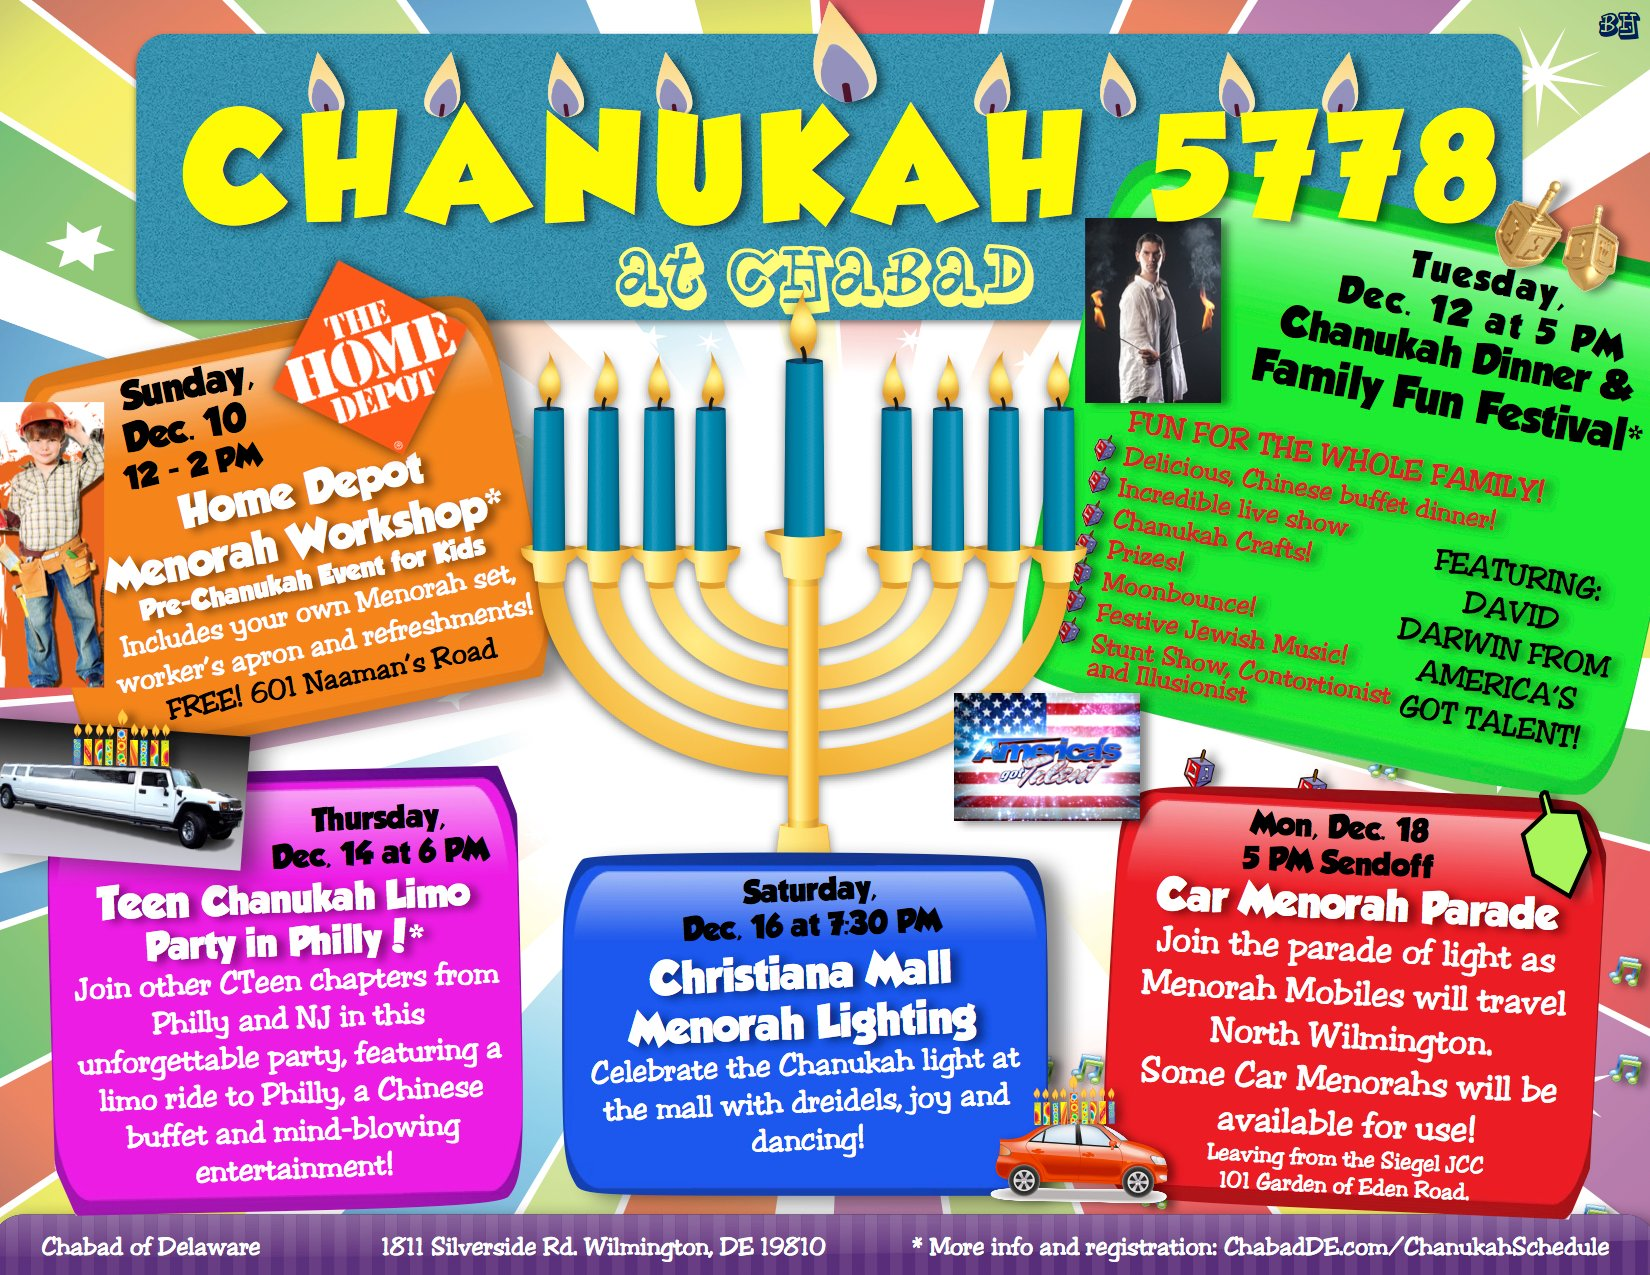 Chanukah Schedule Flyer 5778.jpg